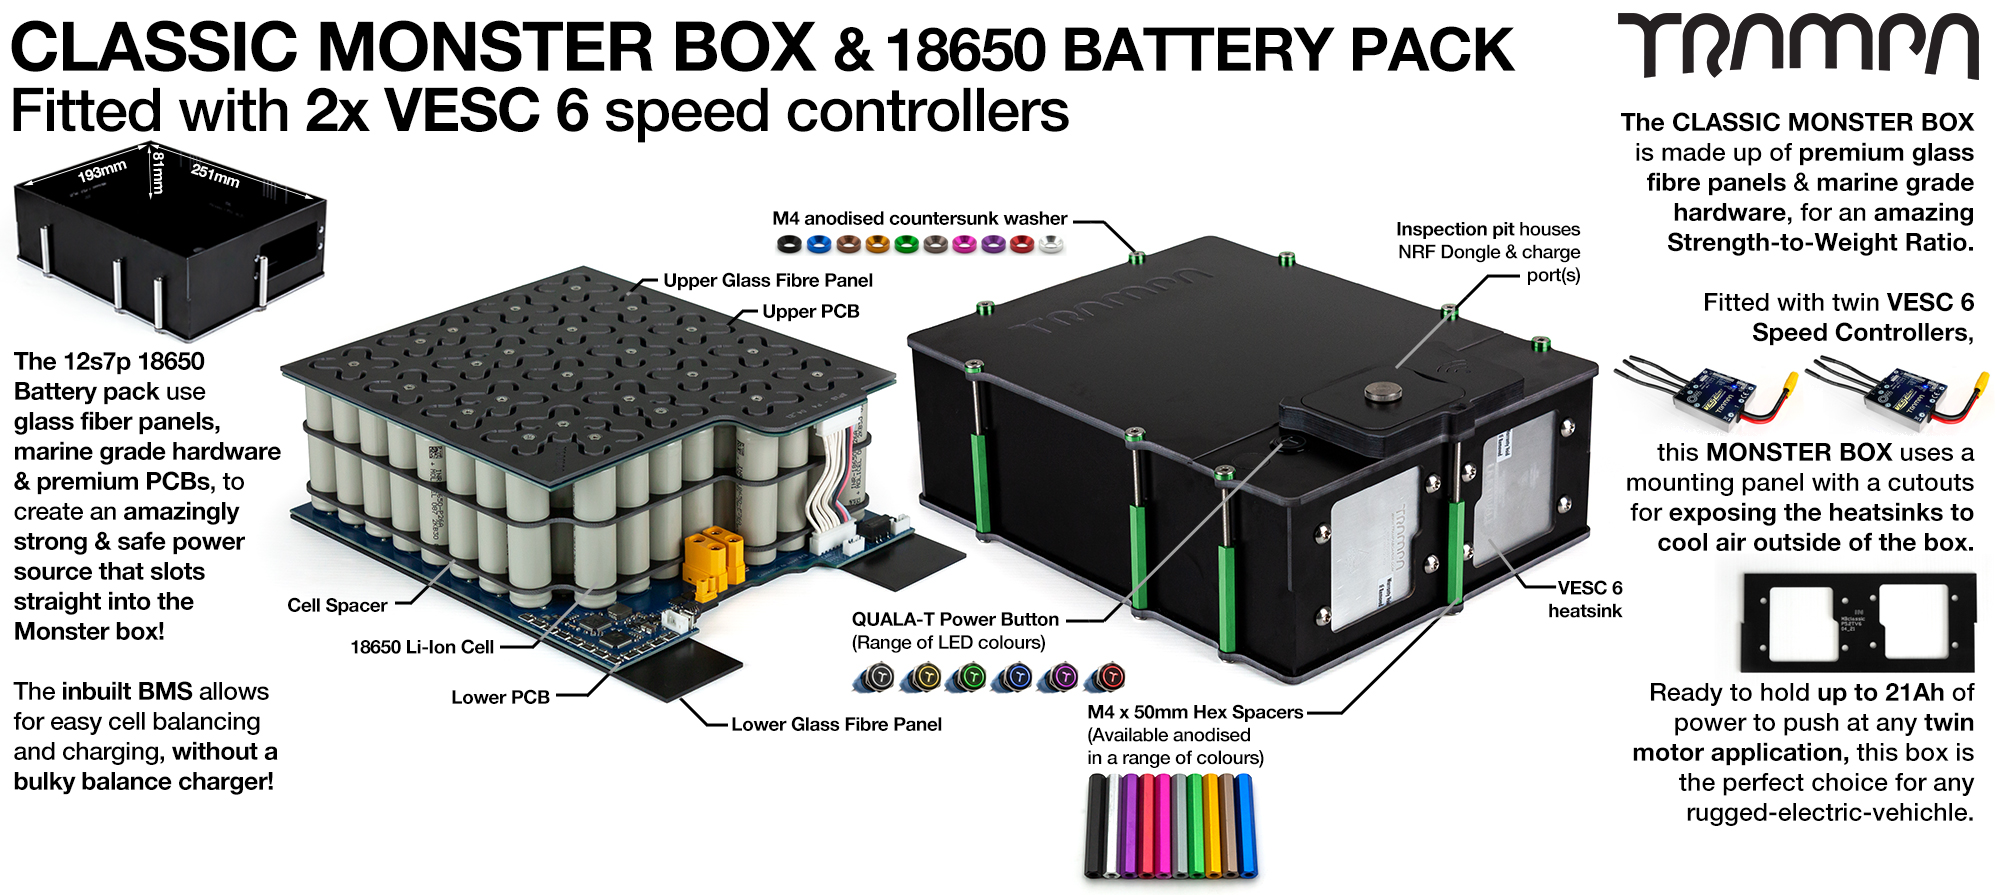 Classic MONSTER Box MkIV - with 18650 PCB Pack, 2x VESC 6 with NRF & 84x 18650 cells 12s7p 21Ah - PCB based Battery Pack with Integrated Battery Management System (BMS) - UK CUSTOMERS ONLY